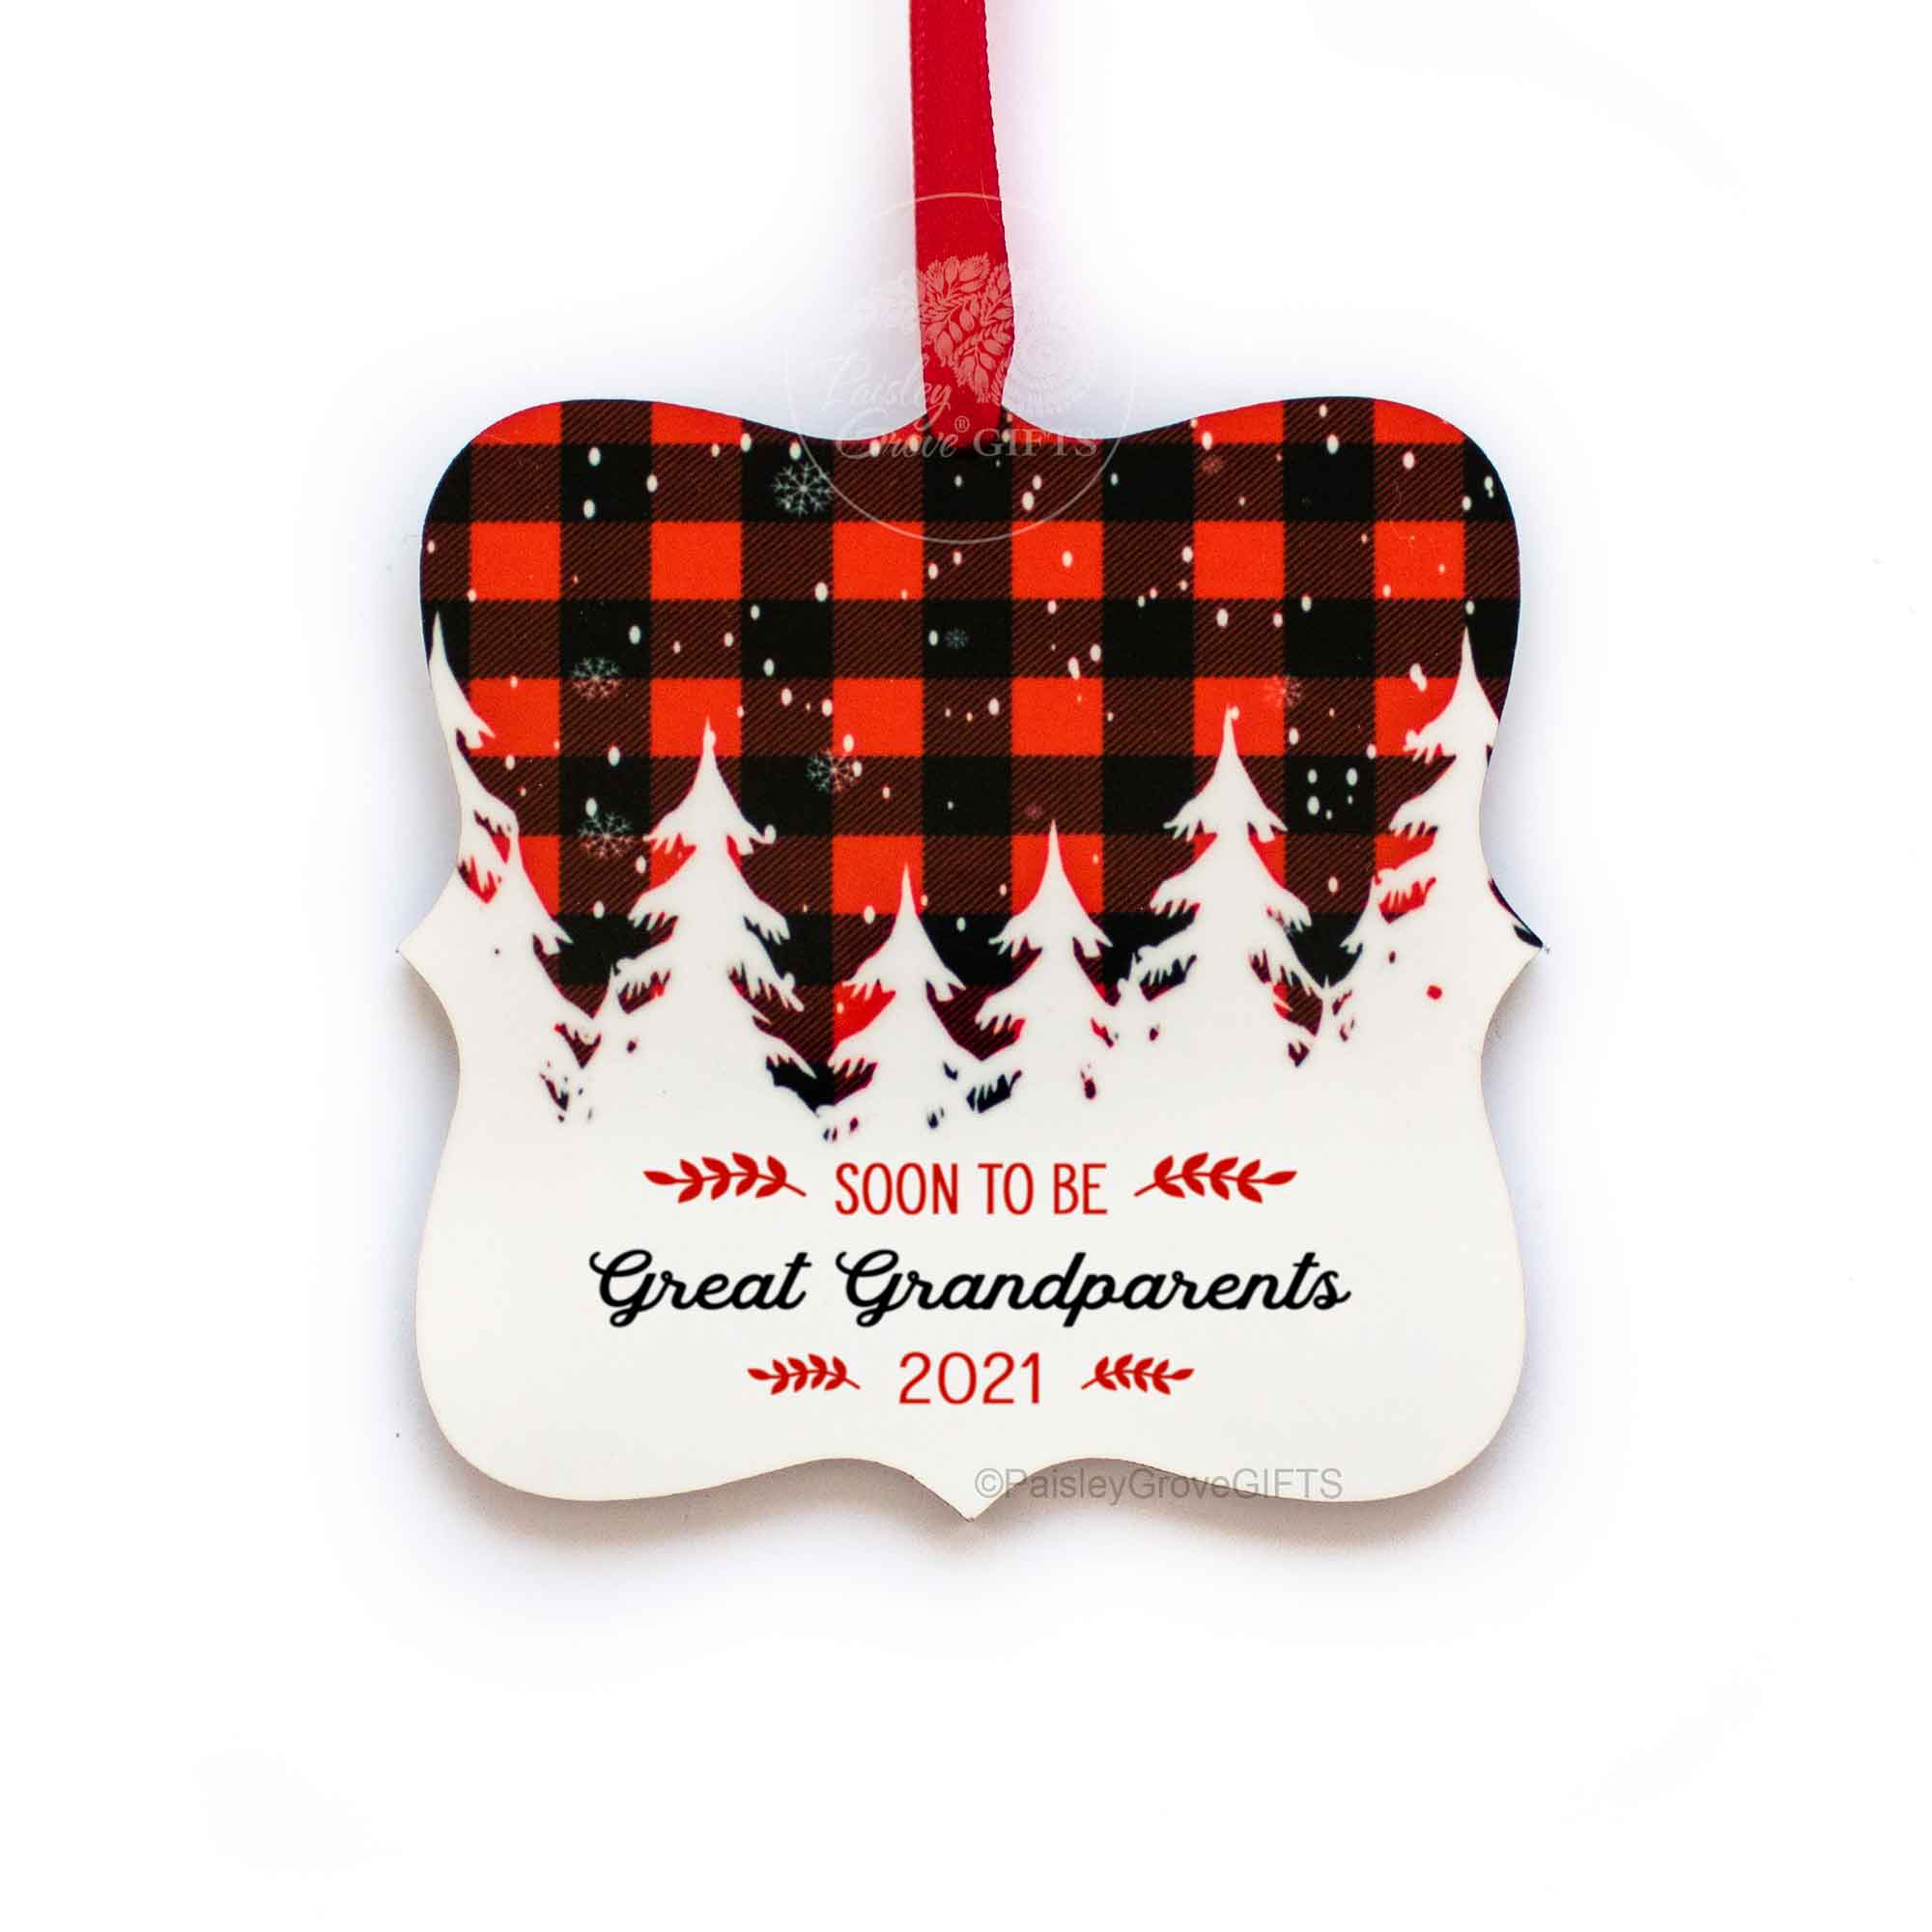 CopyrightPaisleyGroveGIFTS S502e6 Soon To Be Great Grandparents Christmas Ornament Pregnancy Announcement